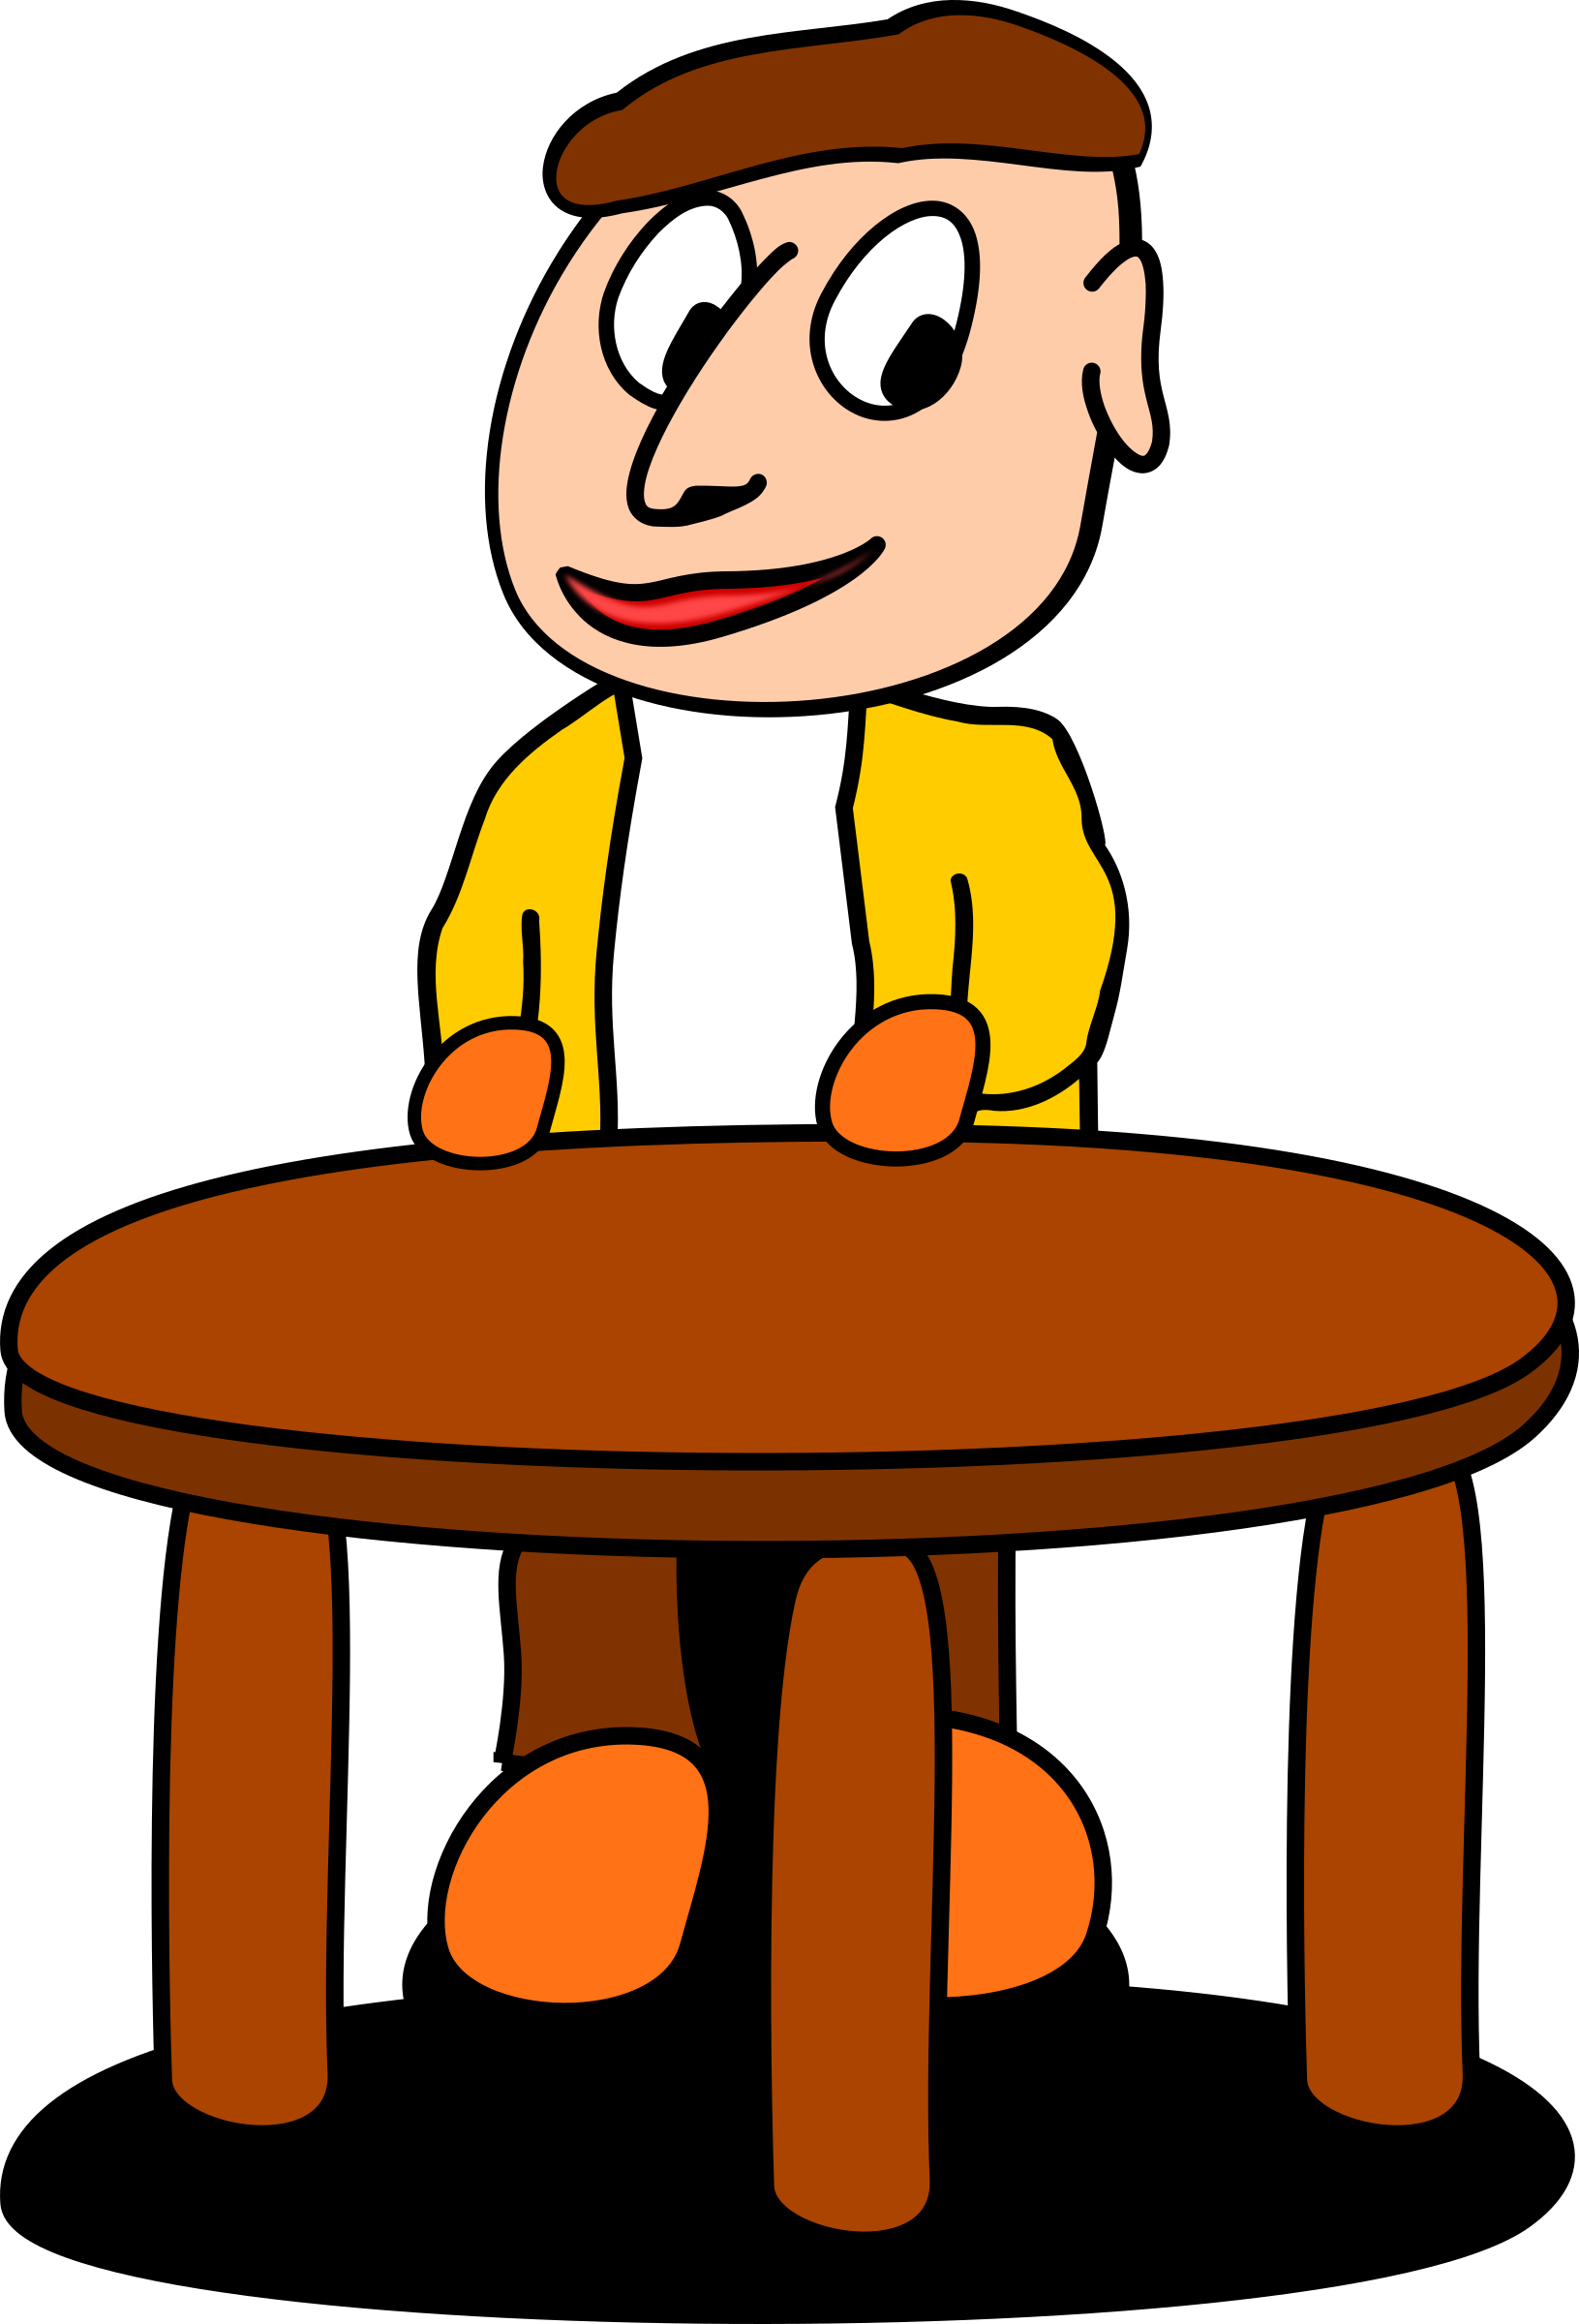 Standing at the big. Clipart table brown table